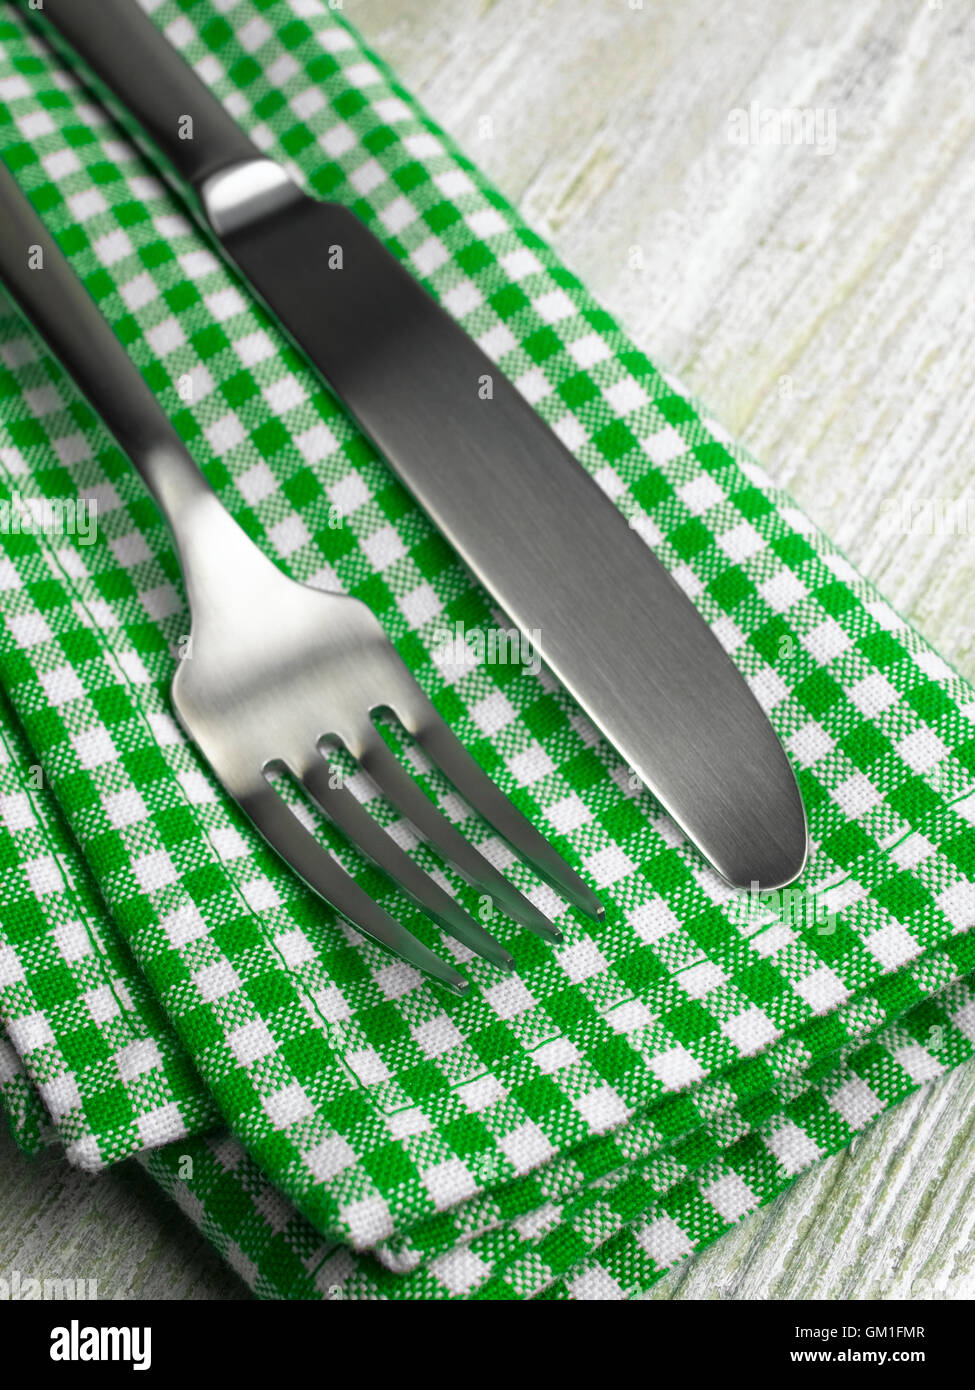 Green Napkin and cutlery - Stock Image